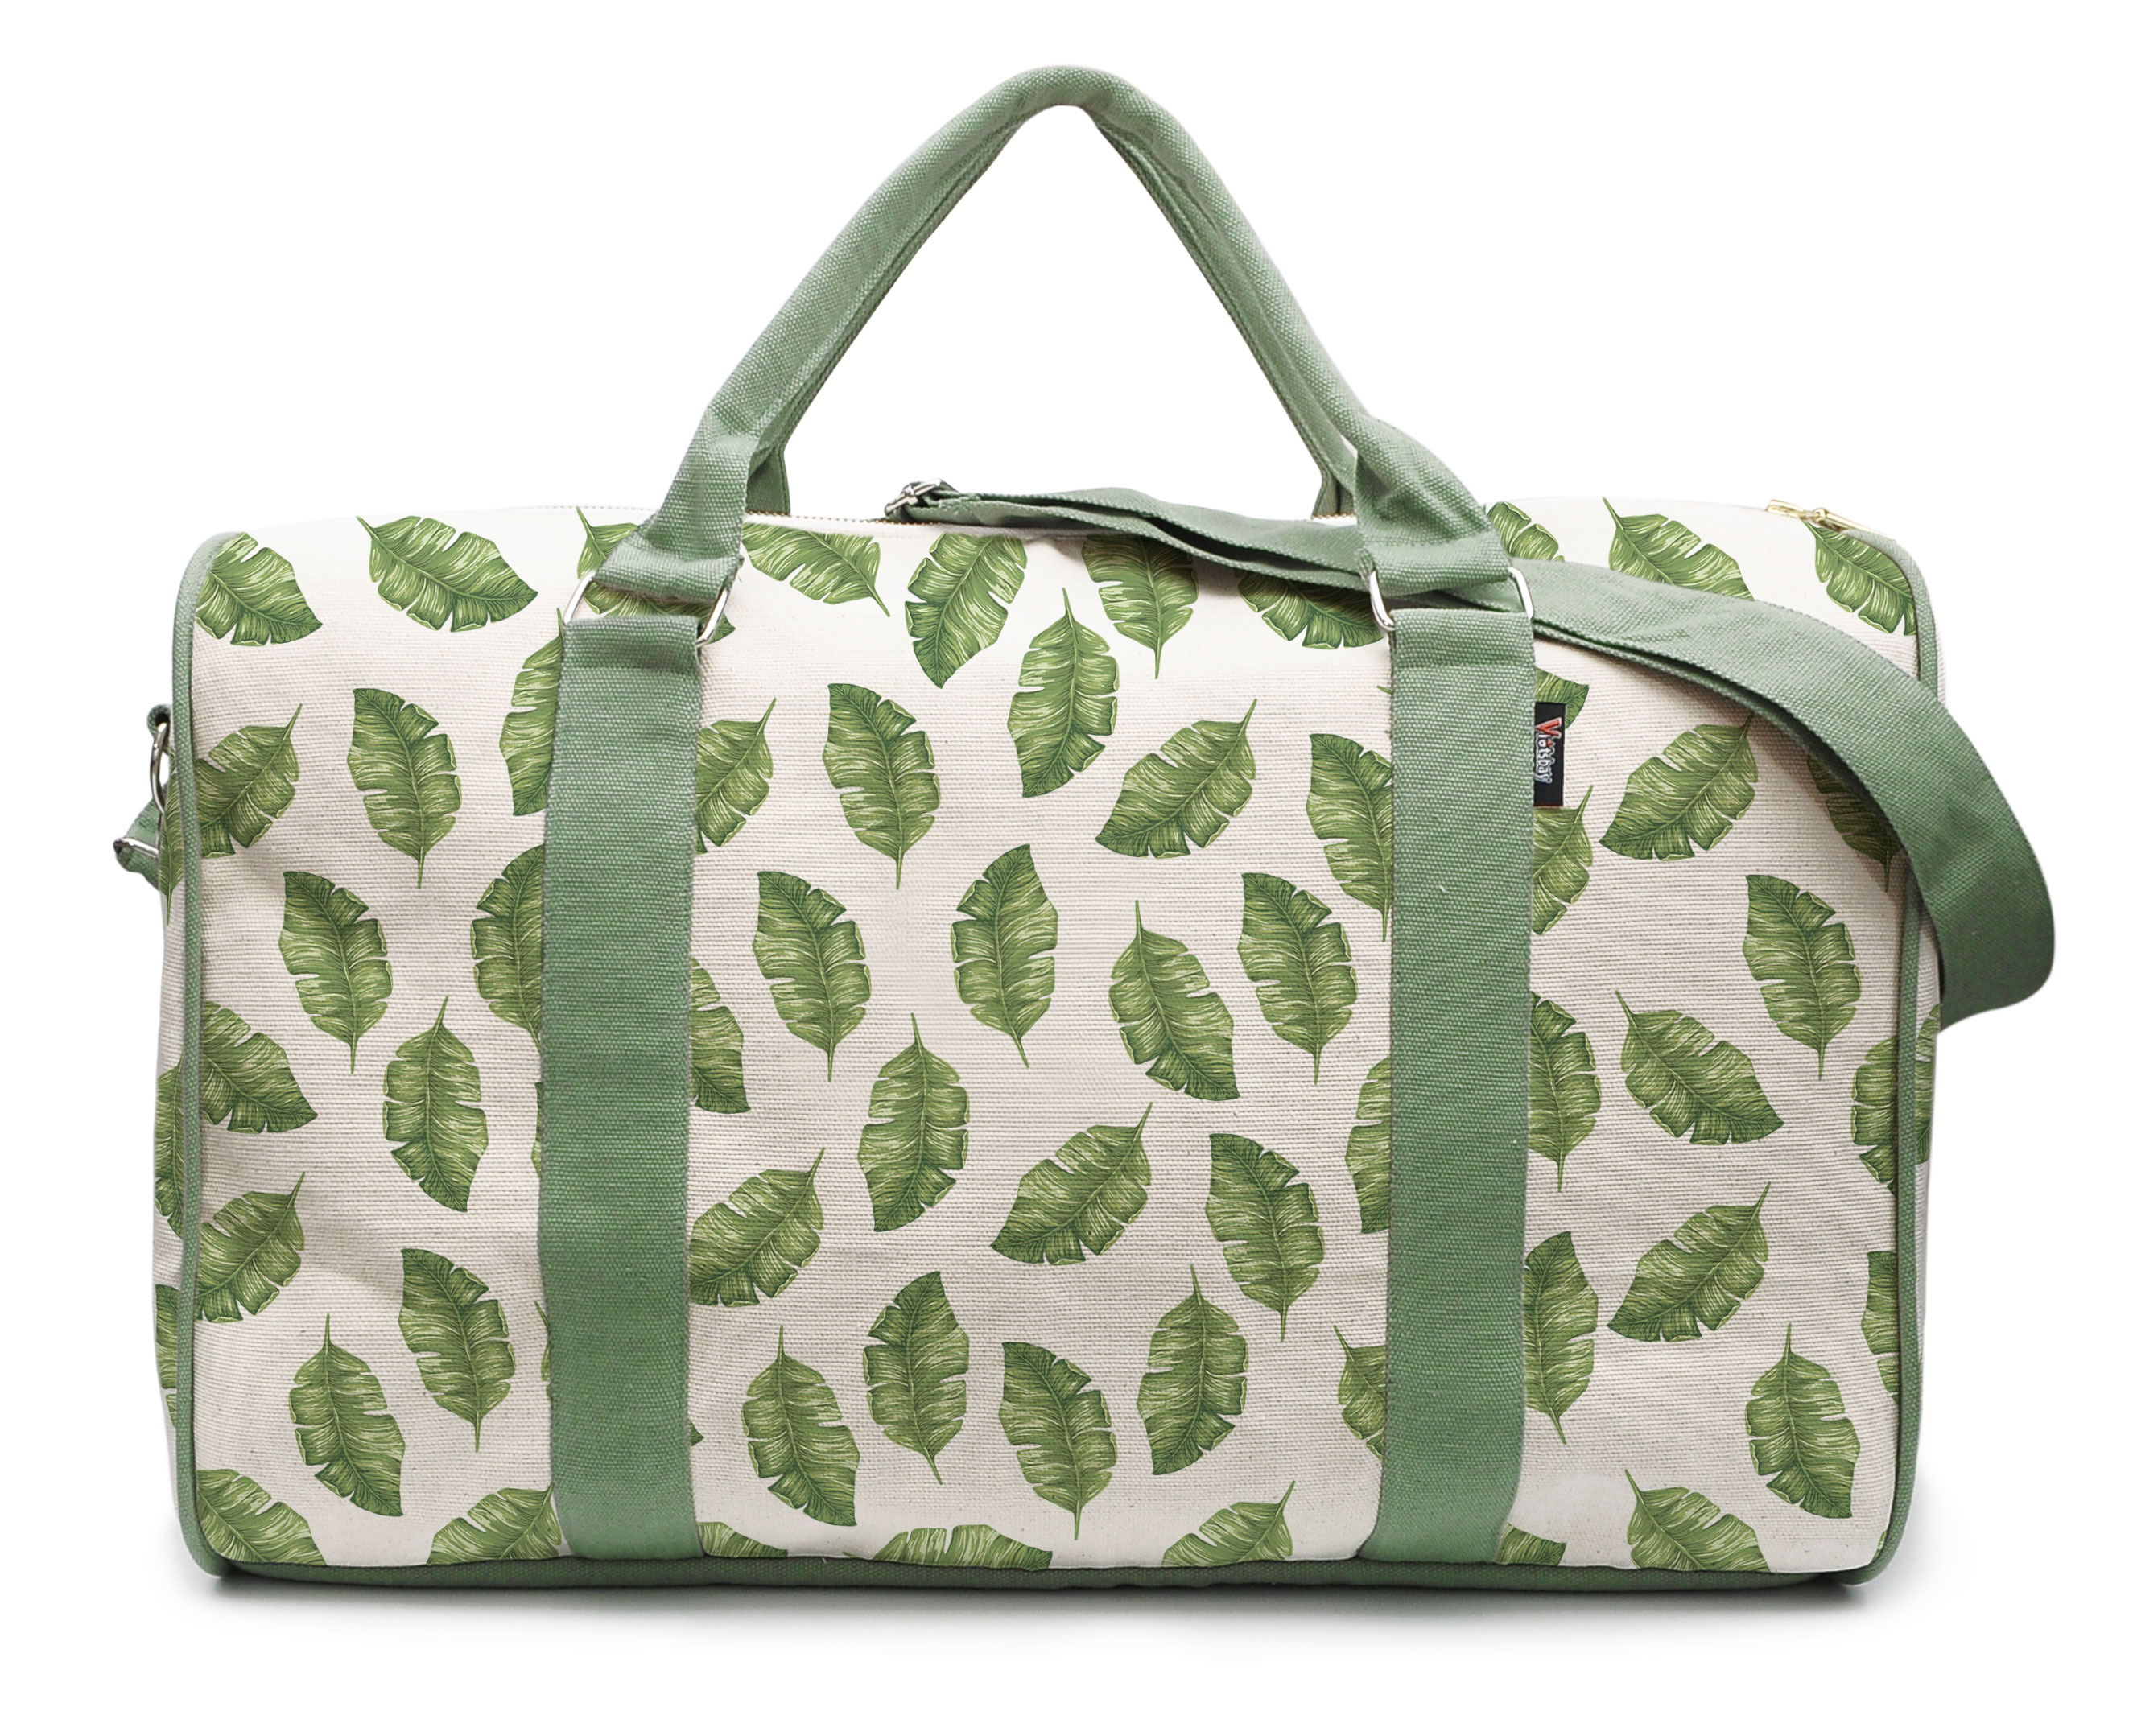 WIHVE Gym Bag with Shoes Compartment Llama Tropical Cactus Travel Duffel Bag